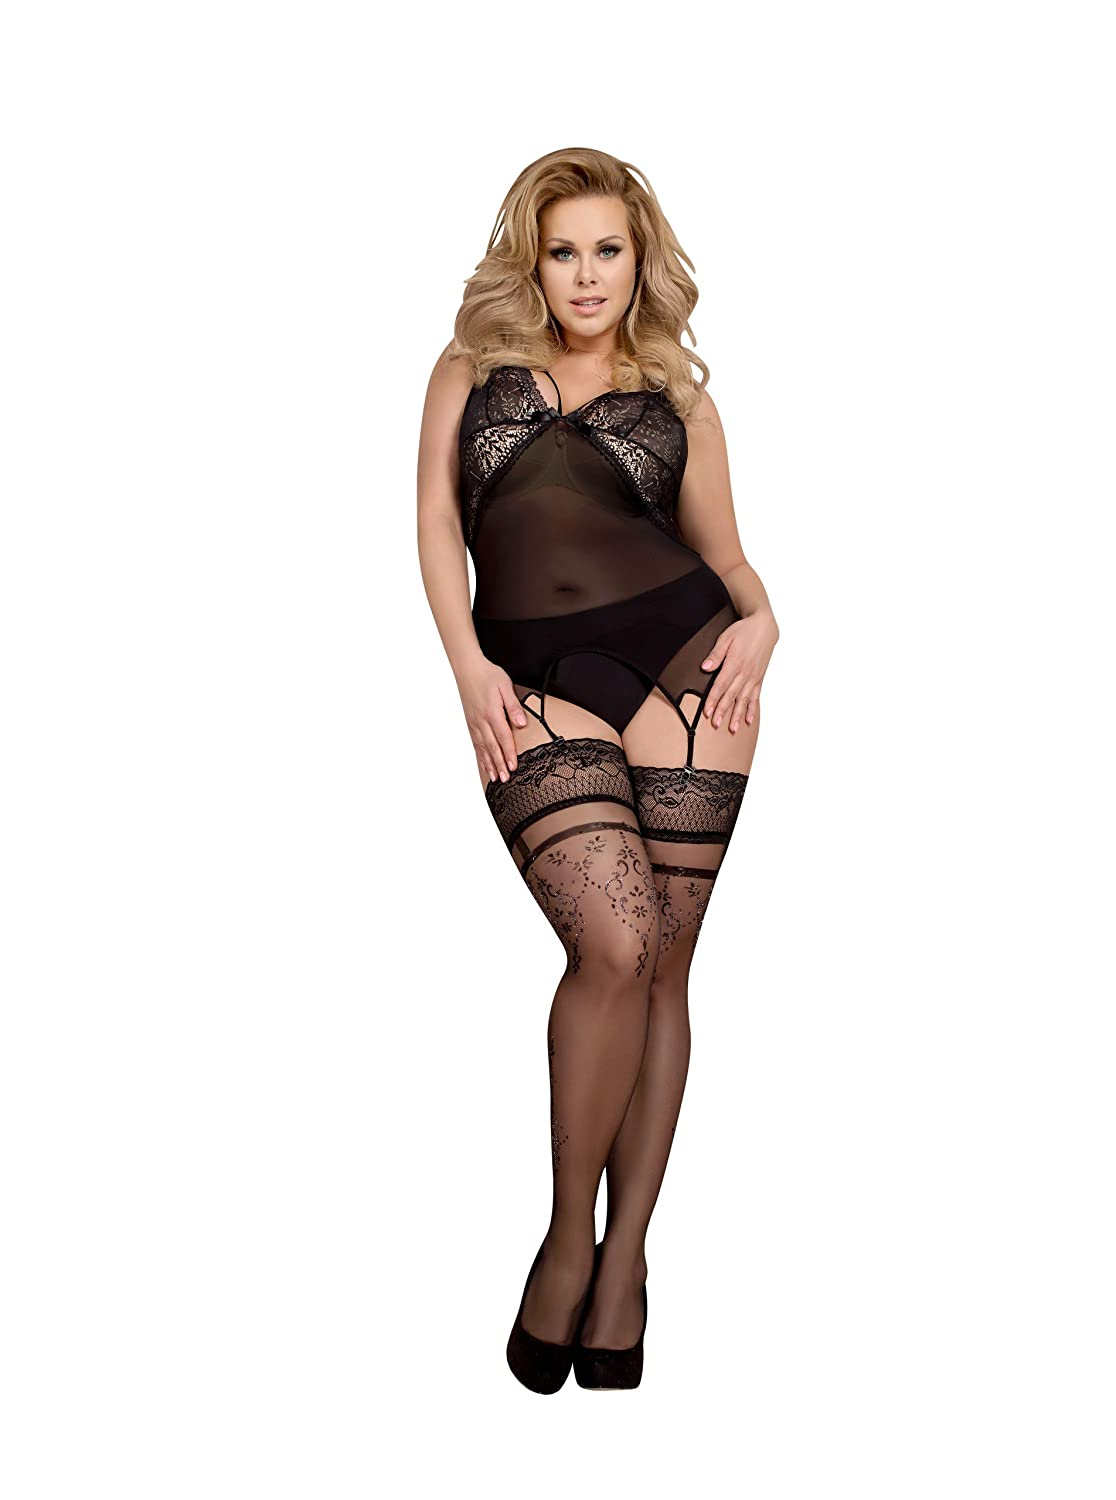 35990c8893384 Ballerina Hold Ups Stockings Plus Size Stockings Size Plus Black Silver 366  - Black -: Amazon.co.uk: Clothing